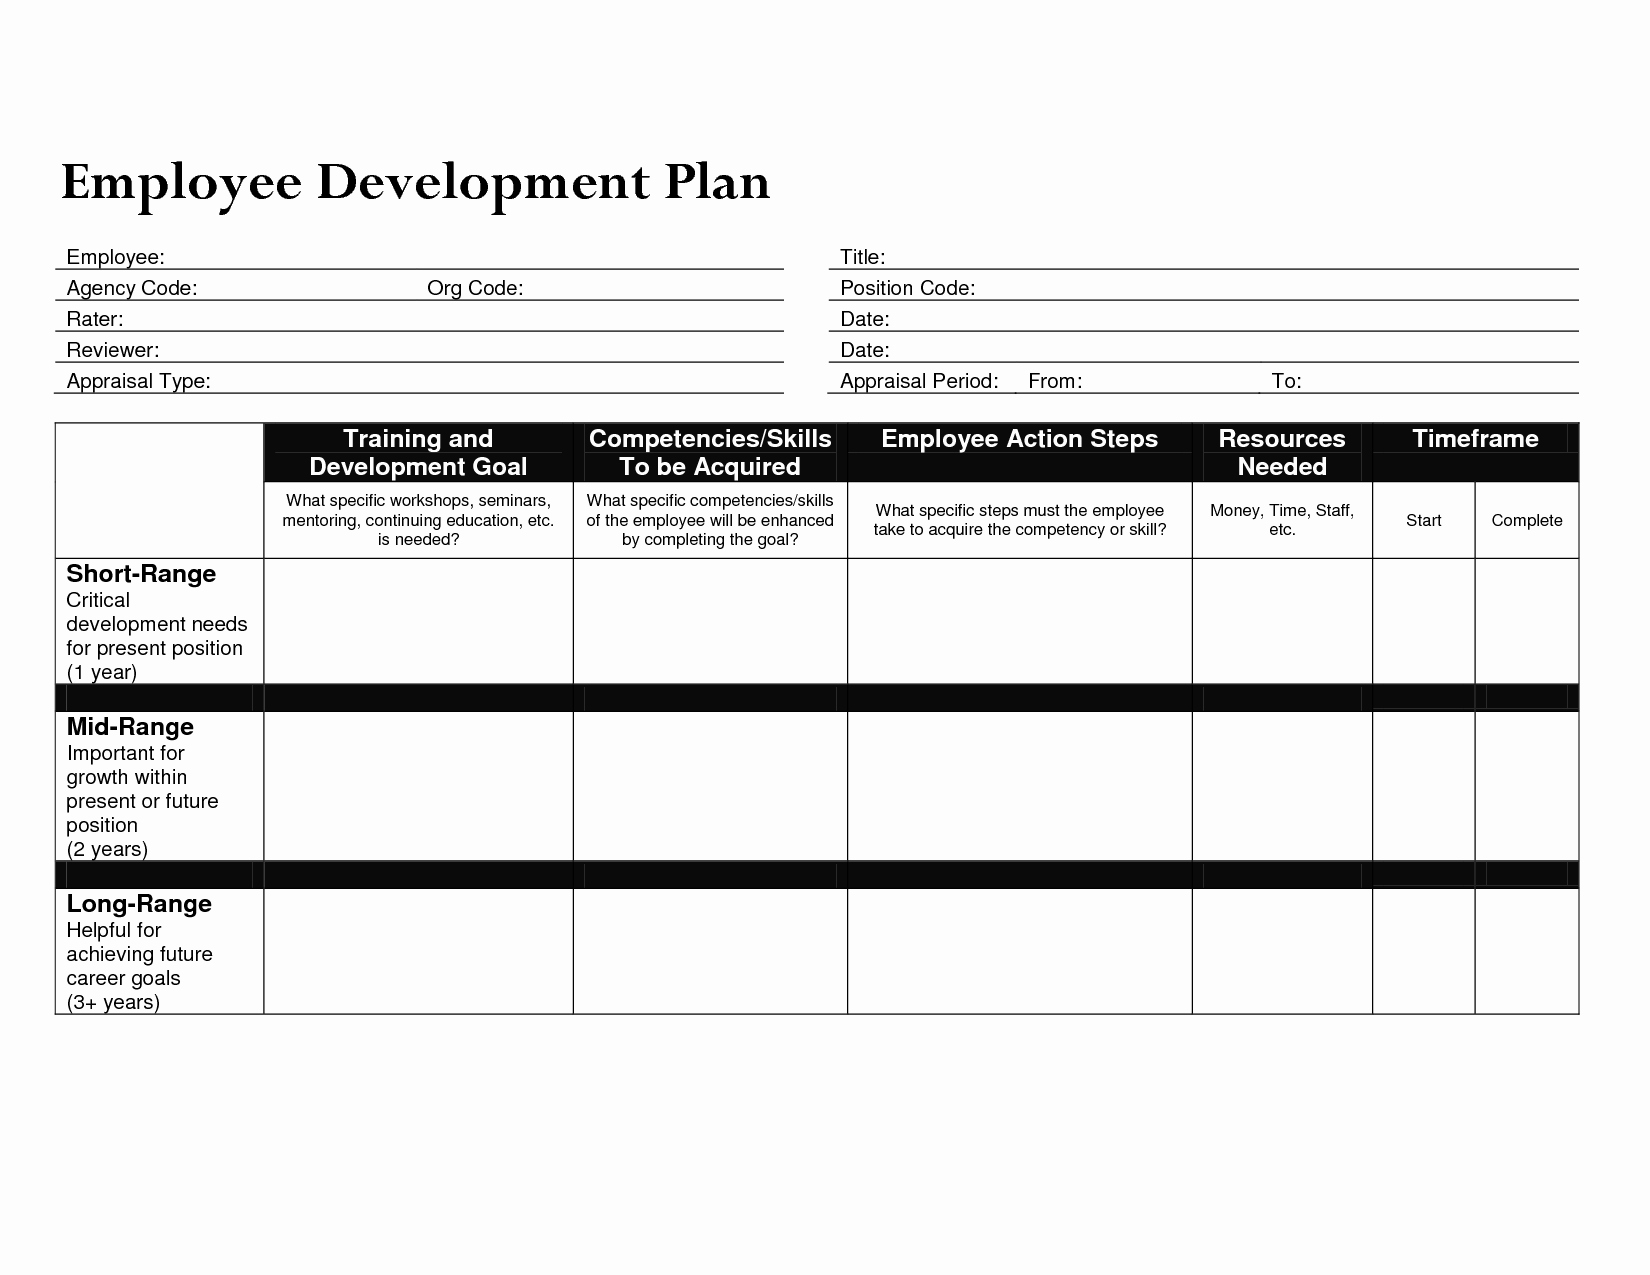 Employee Development Plan Template Awesome Employee Development Plan Templates